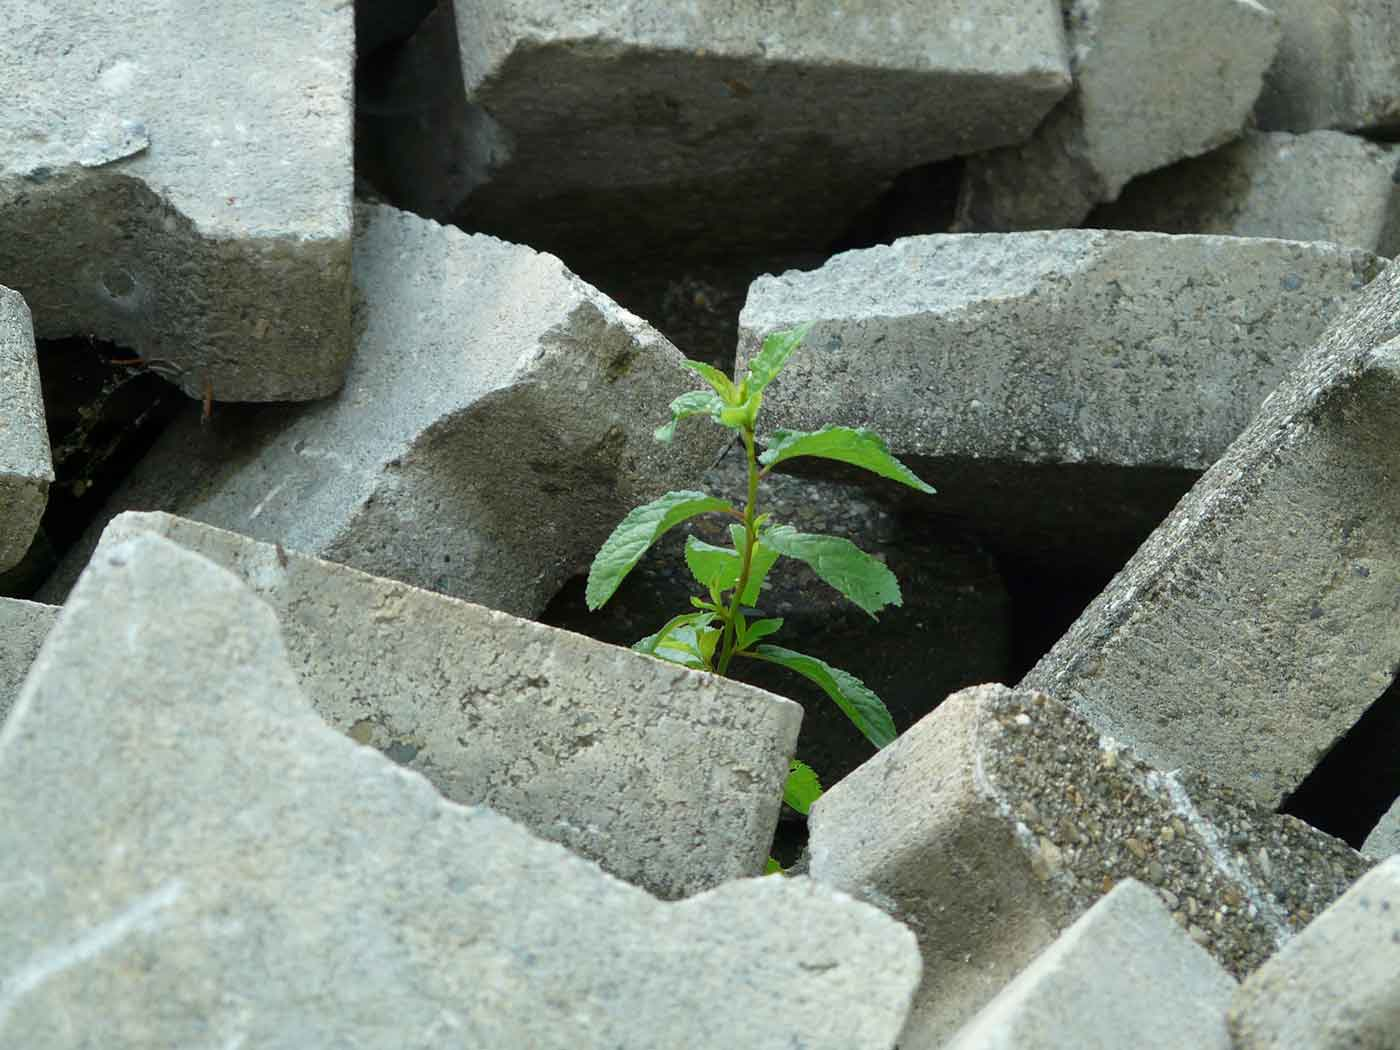 Weed amidst concrete